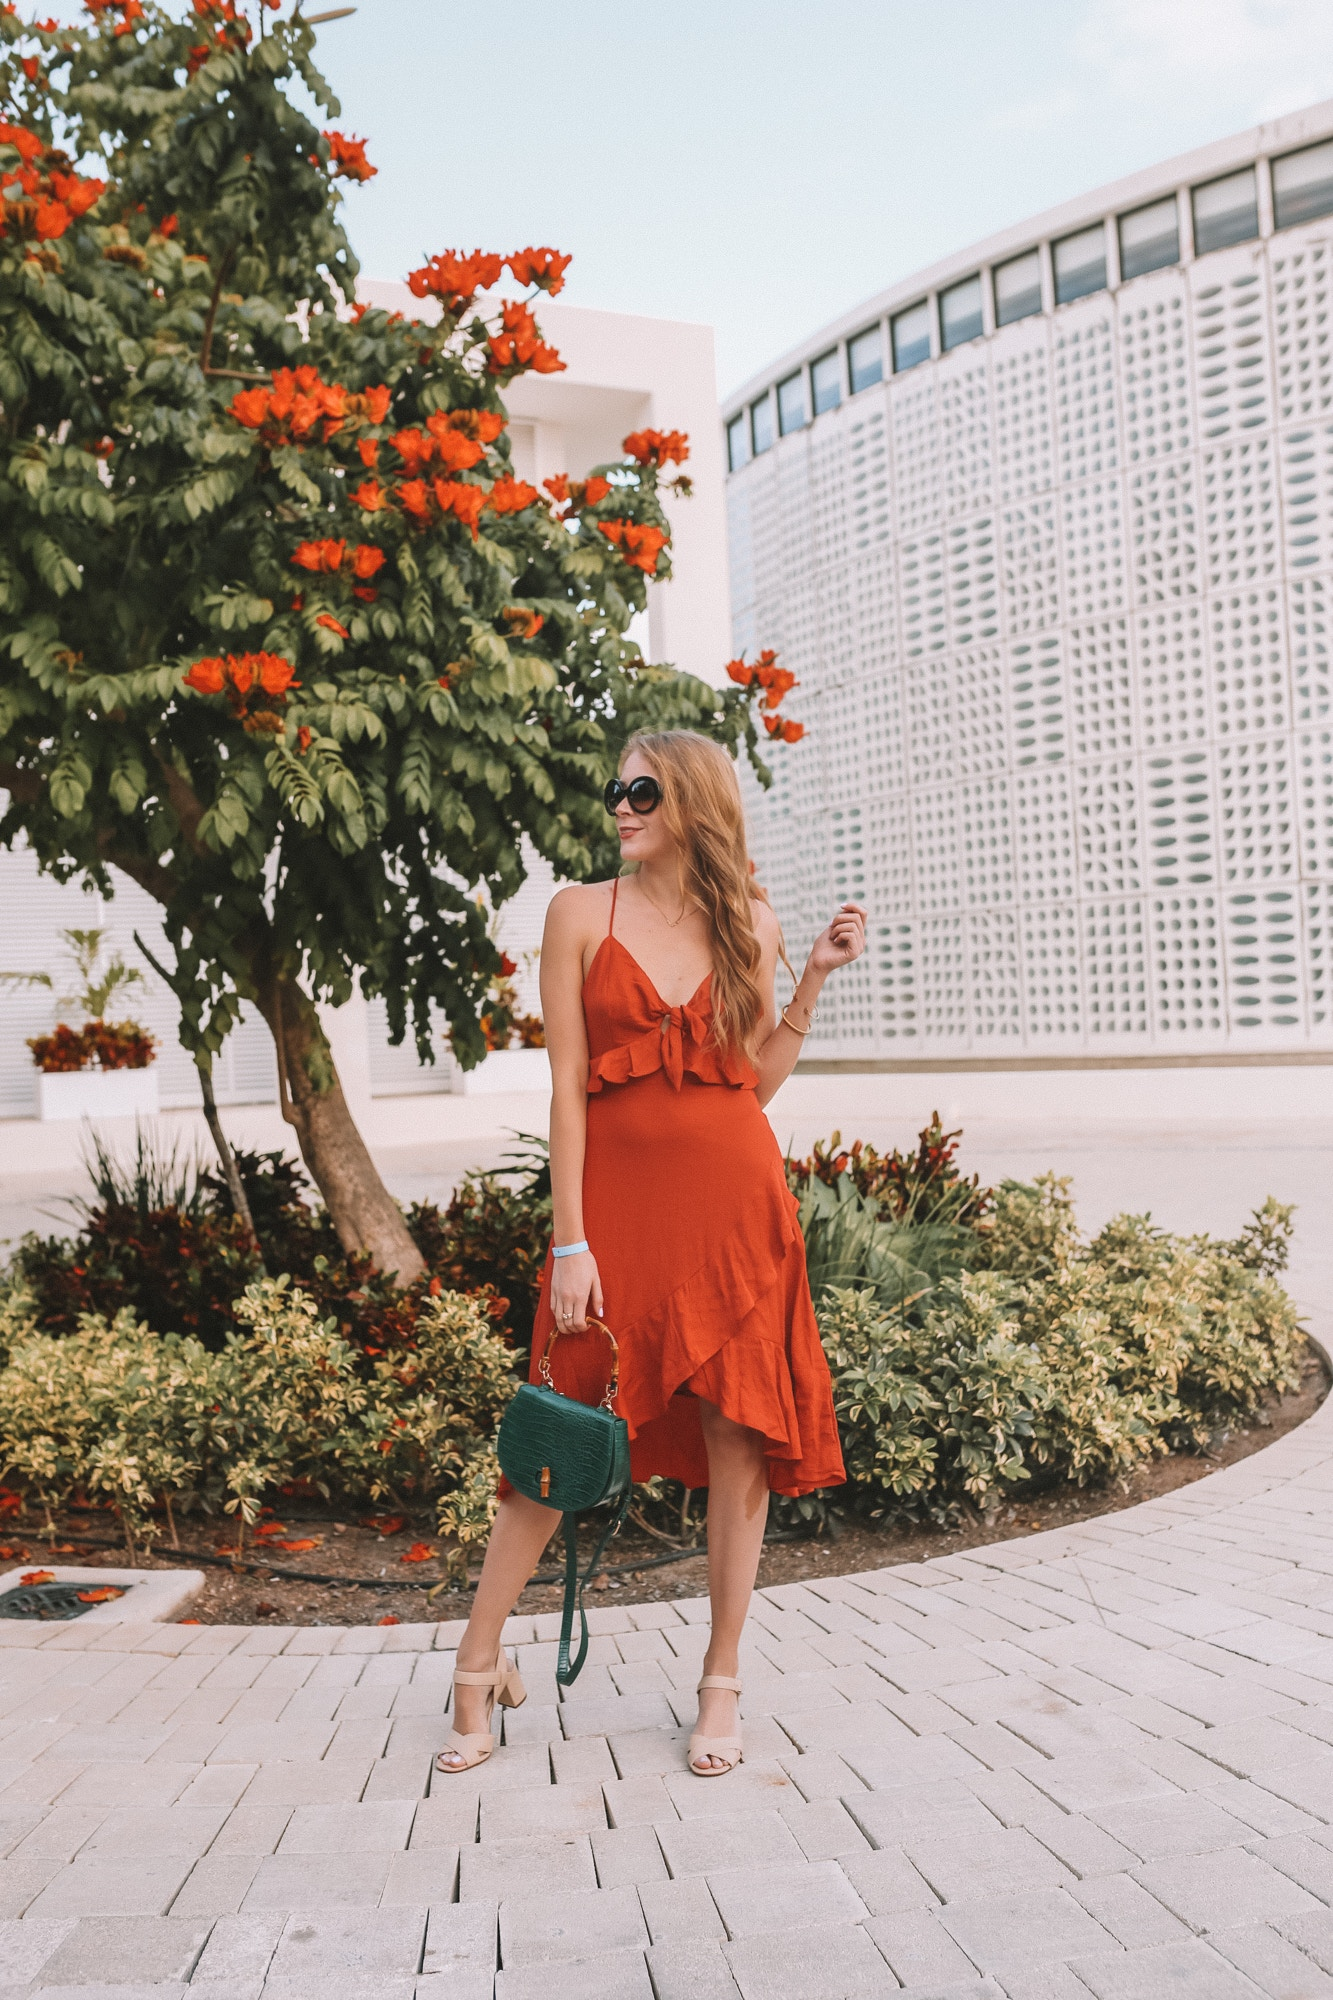 Orange linen spaghetti strap dress from Forever 21 paired with dainty gold jewelry. I love wearing a simple dress and fresh, natural makeup for a resort wear look.